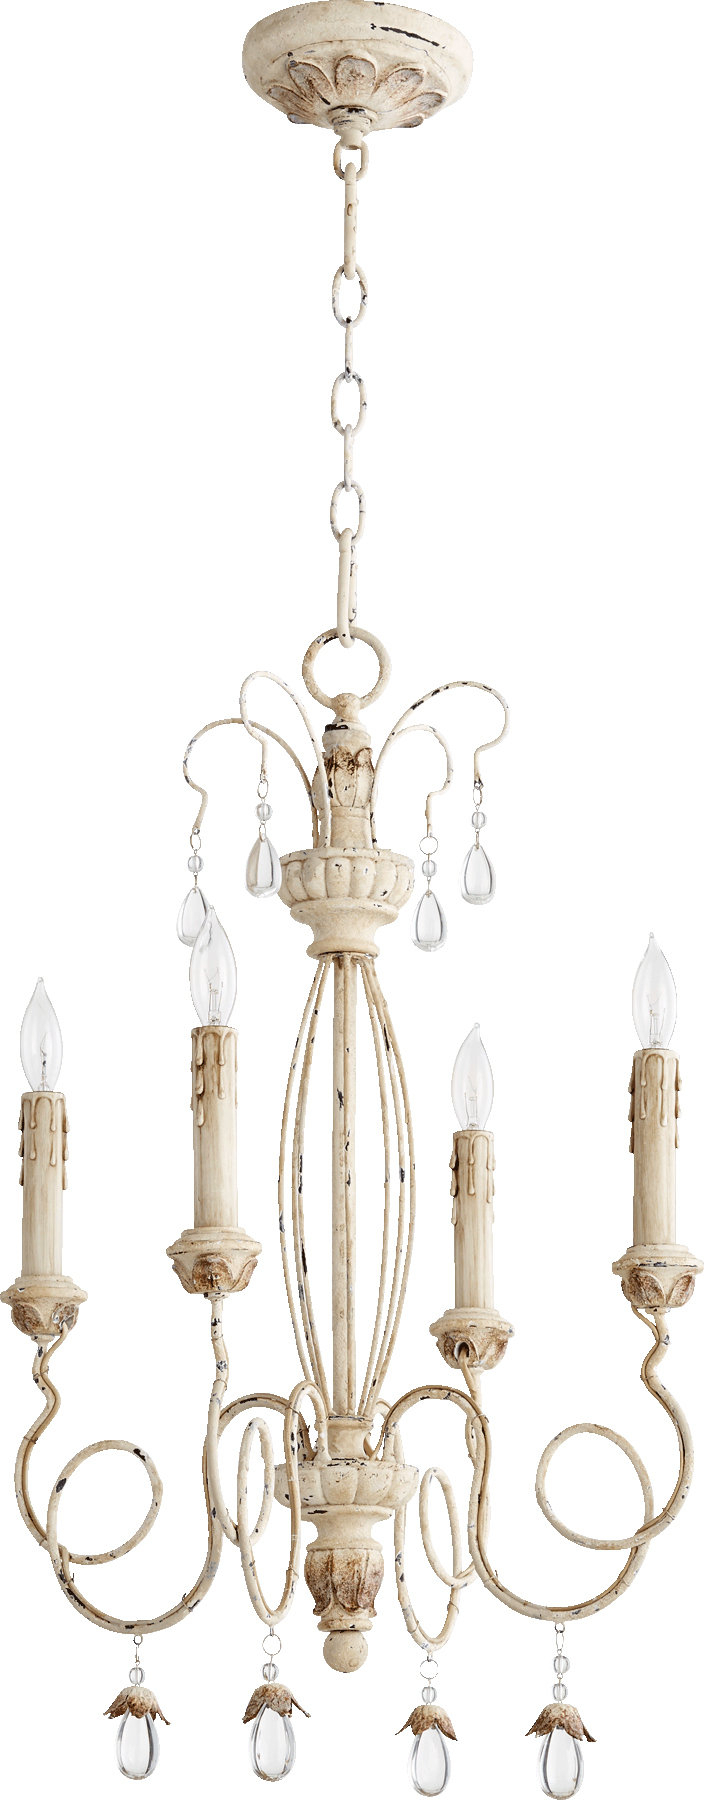 Baxley 4 Light Candle Style Chandelier Regarding Bennington 4 Light Candle Style Chandeliers (View 11 of 30)